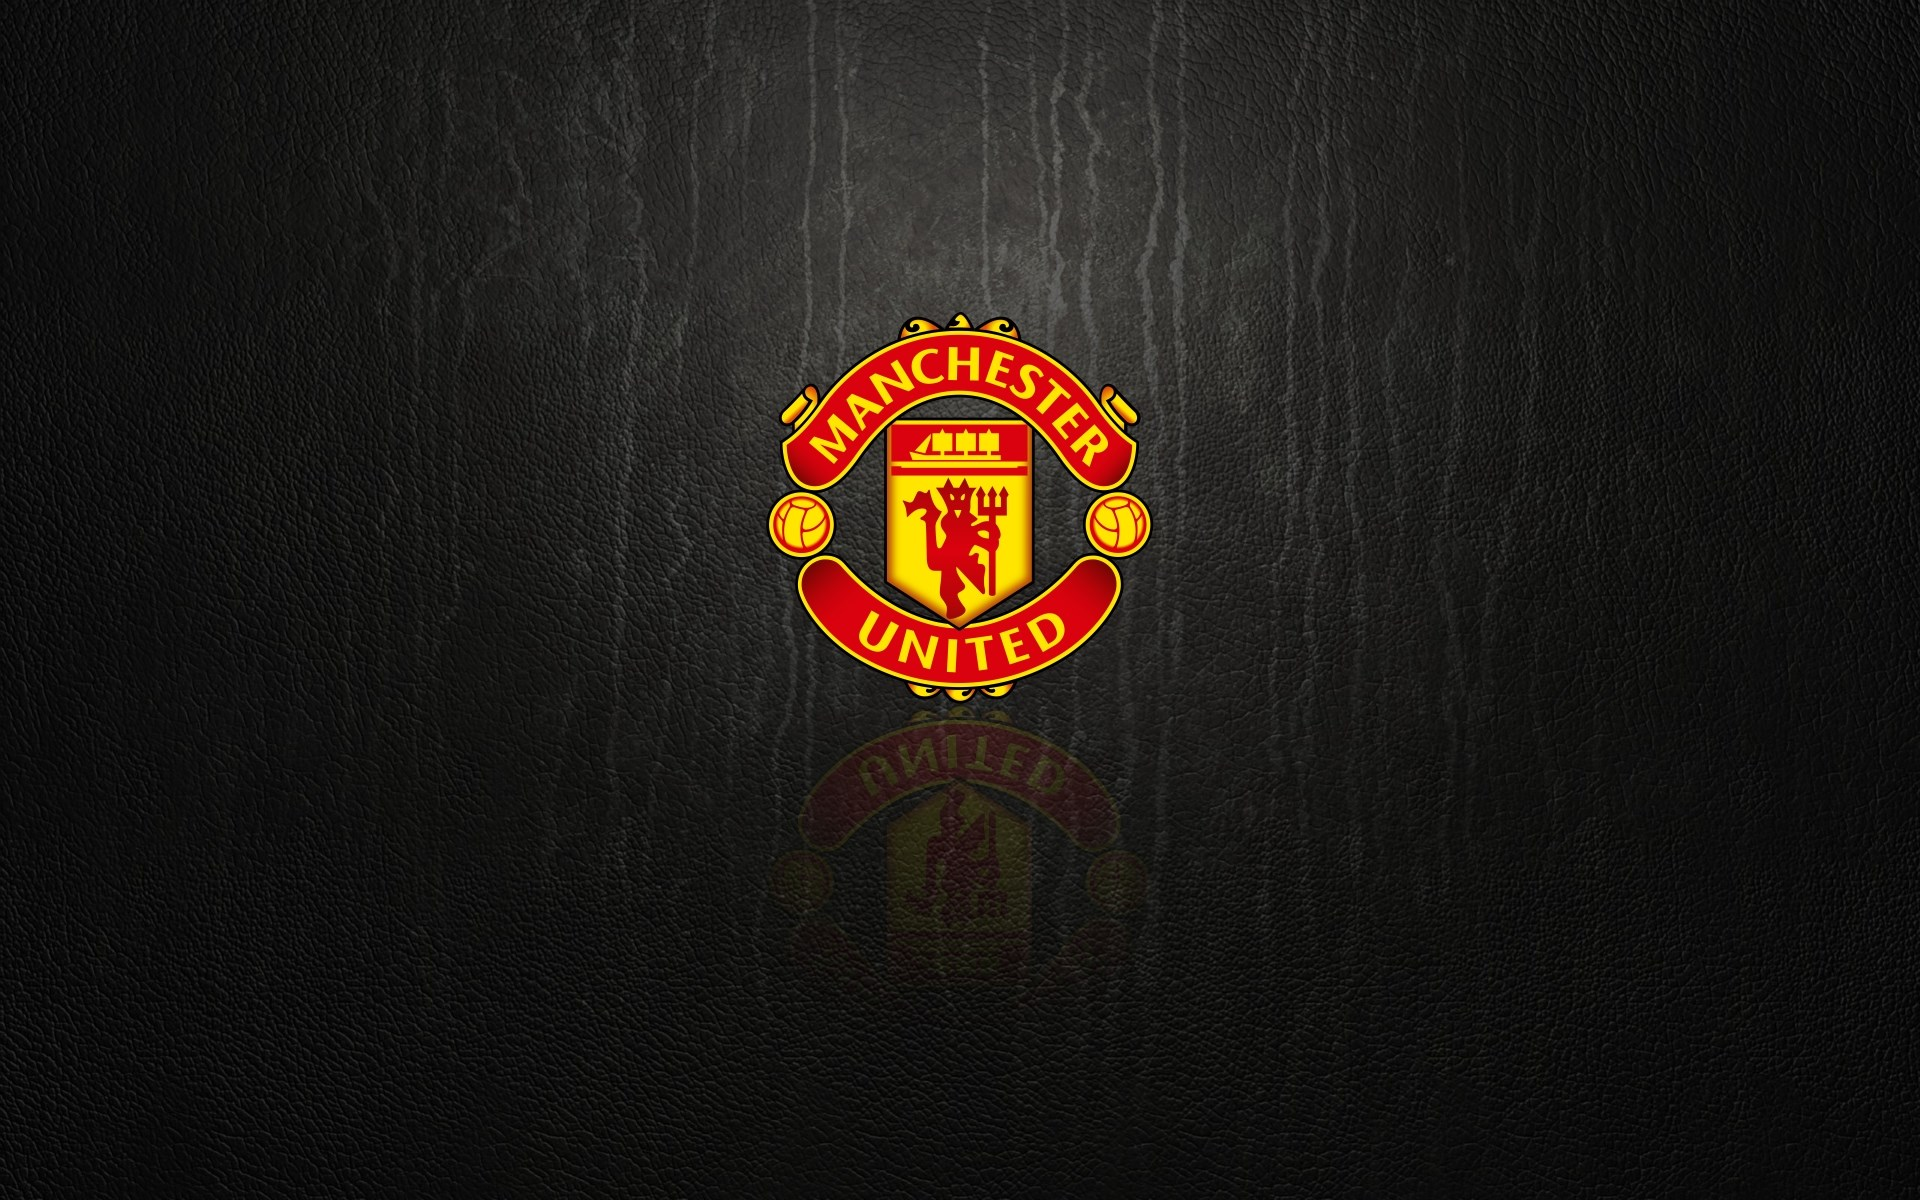 free-desktop-pictures-manchester-united-1920-x-kB-wallpaper-wp3605834